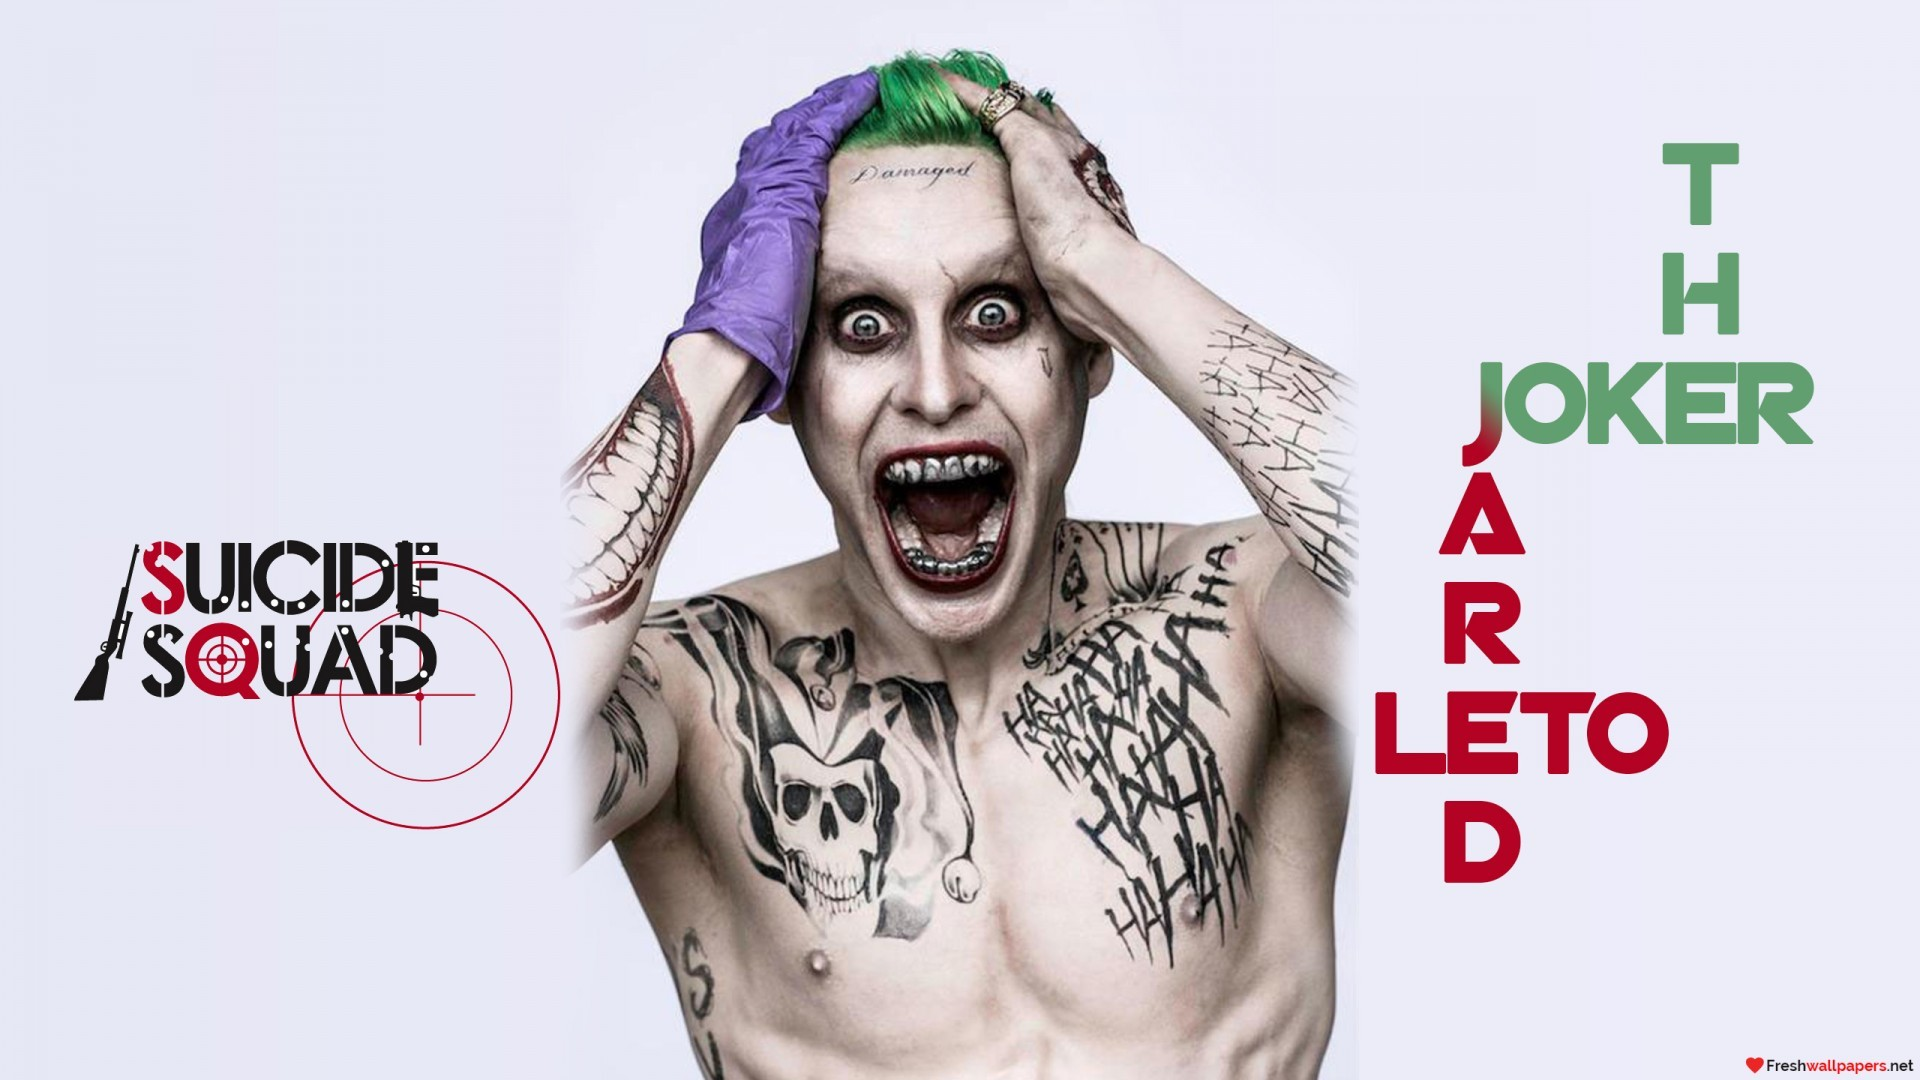 1920x1080 Suicide Squad Wallpaper Movie HD The Joker